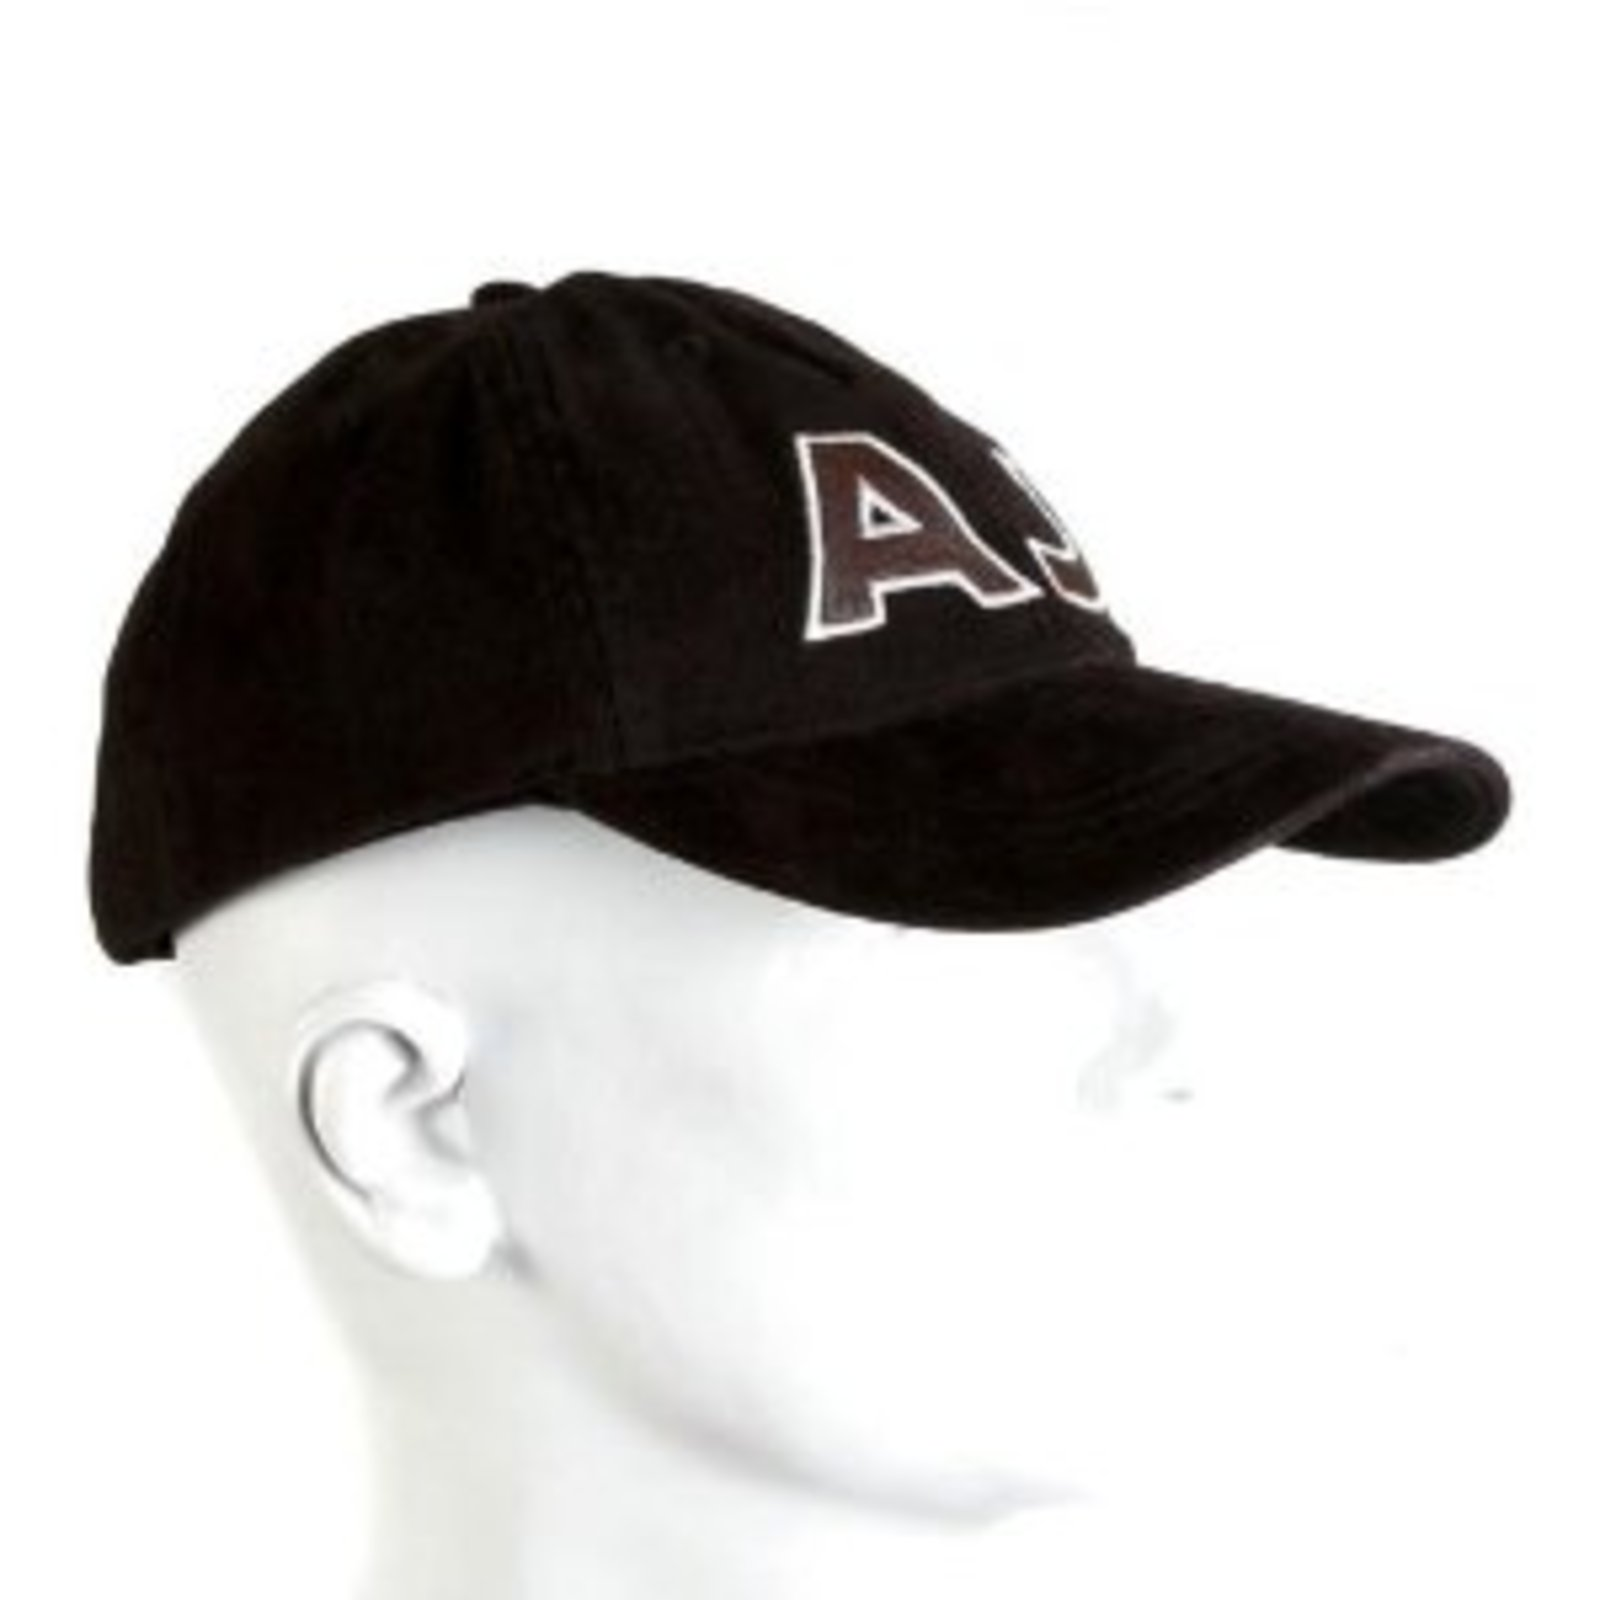 Armani Jeans Black Cap G640133 at Togged Clothing fd0a32e81ff